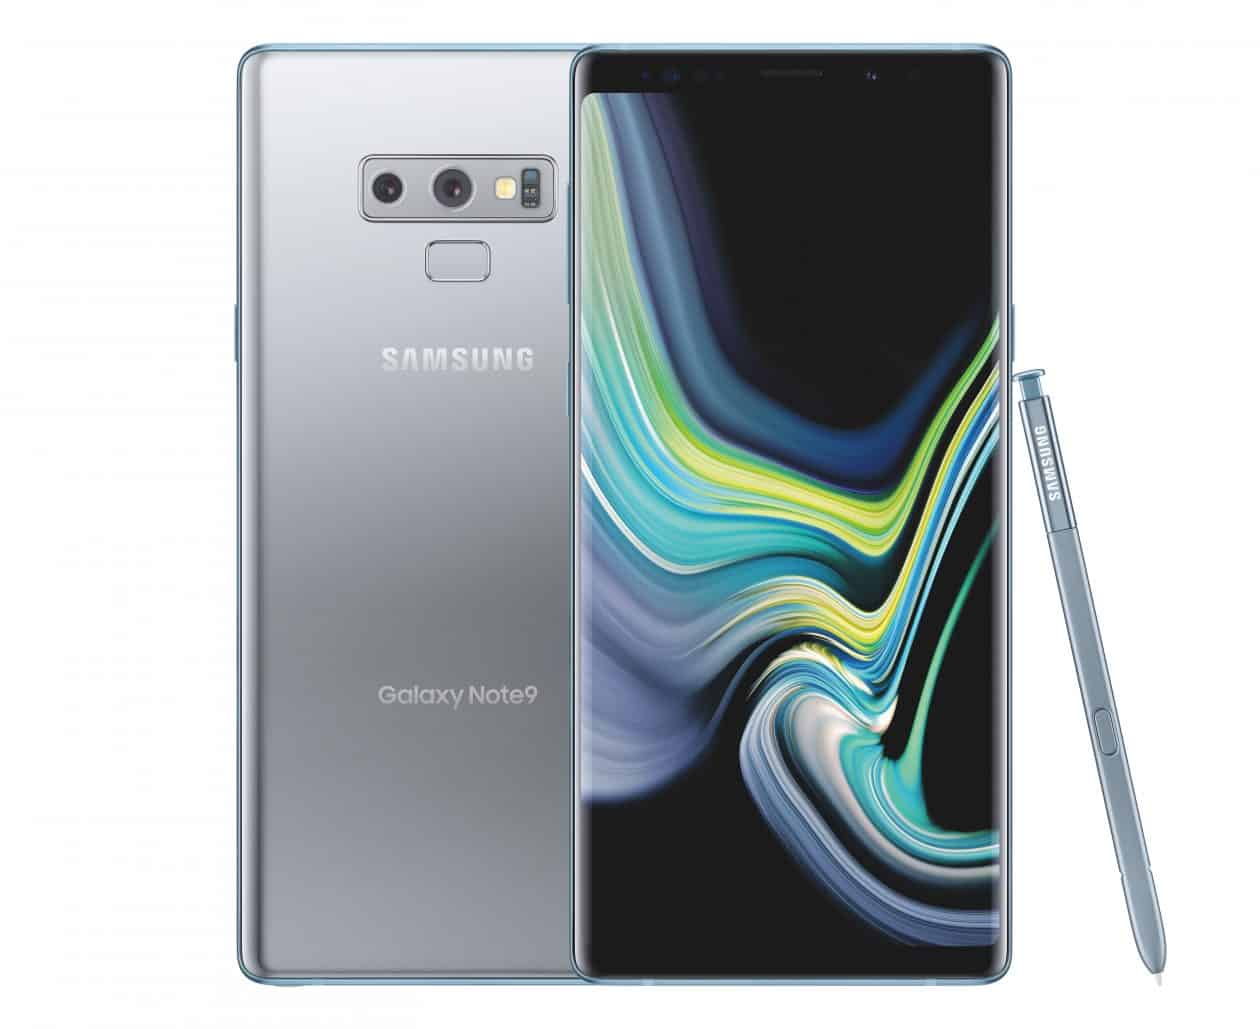 samsung announces cloud silver midnight black galaxy note 9 for the us android news. Black Bedroom Furniture Sets. Home Design Ideas